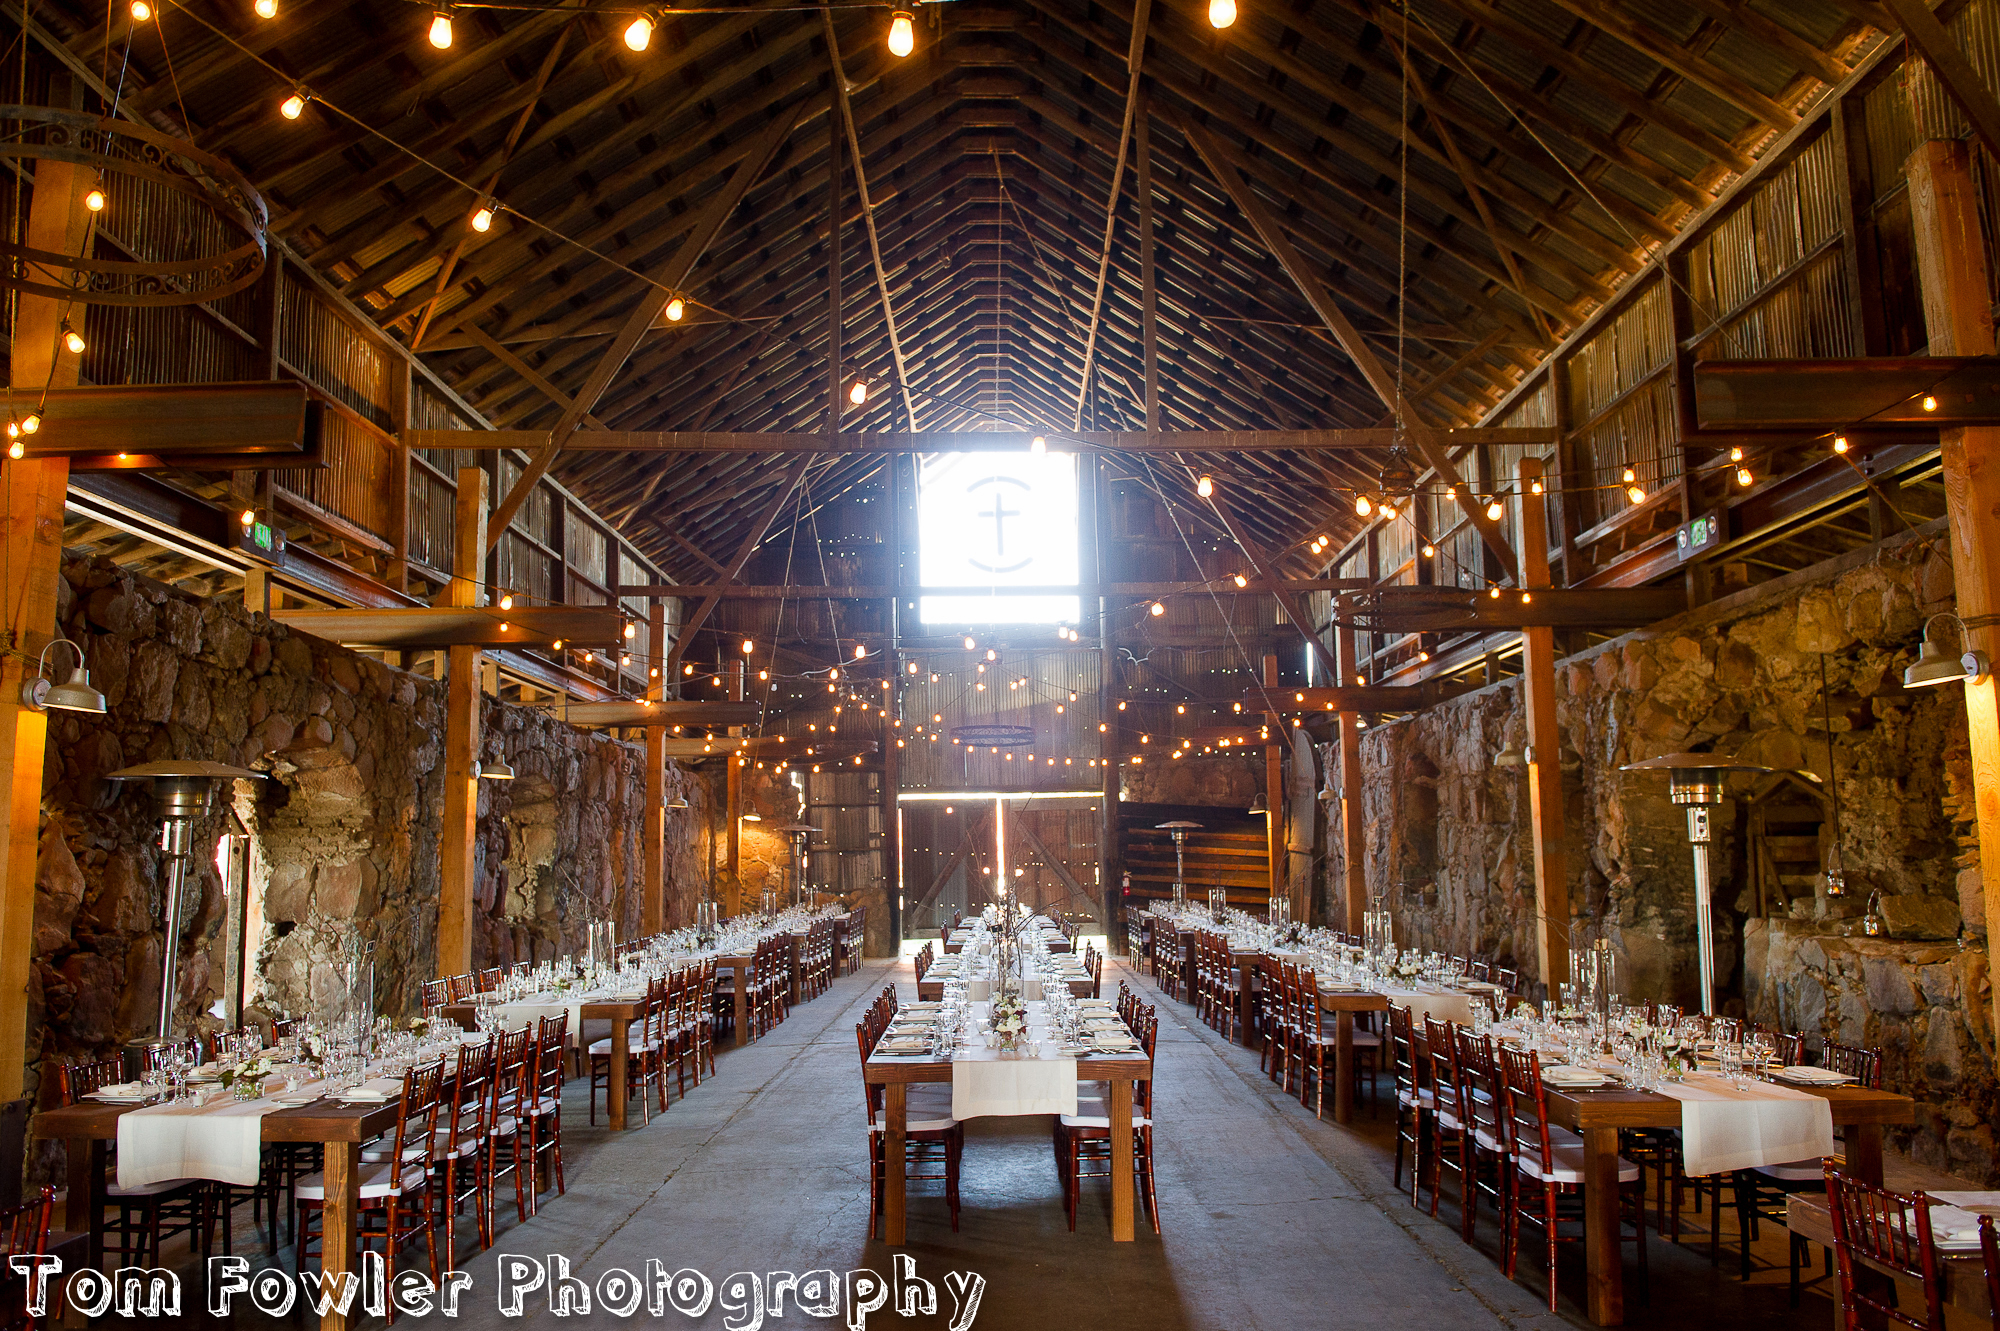 Santa_Margarita_Ranch_Wedding_TomFowlerPhotography_Wedding_Photographer-14